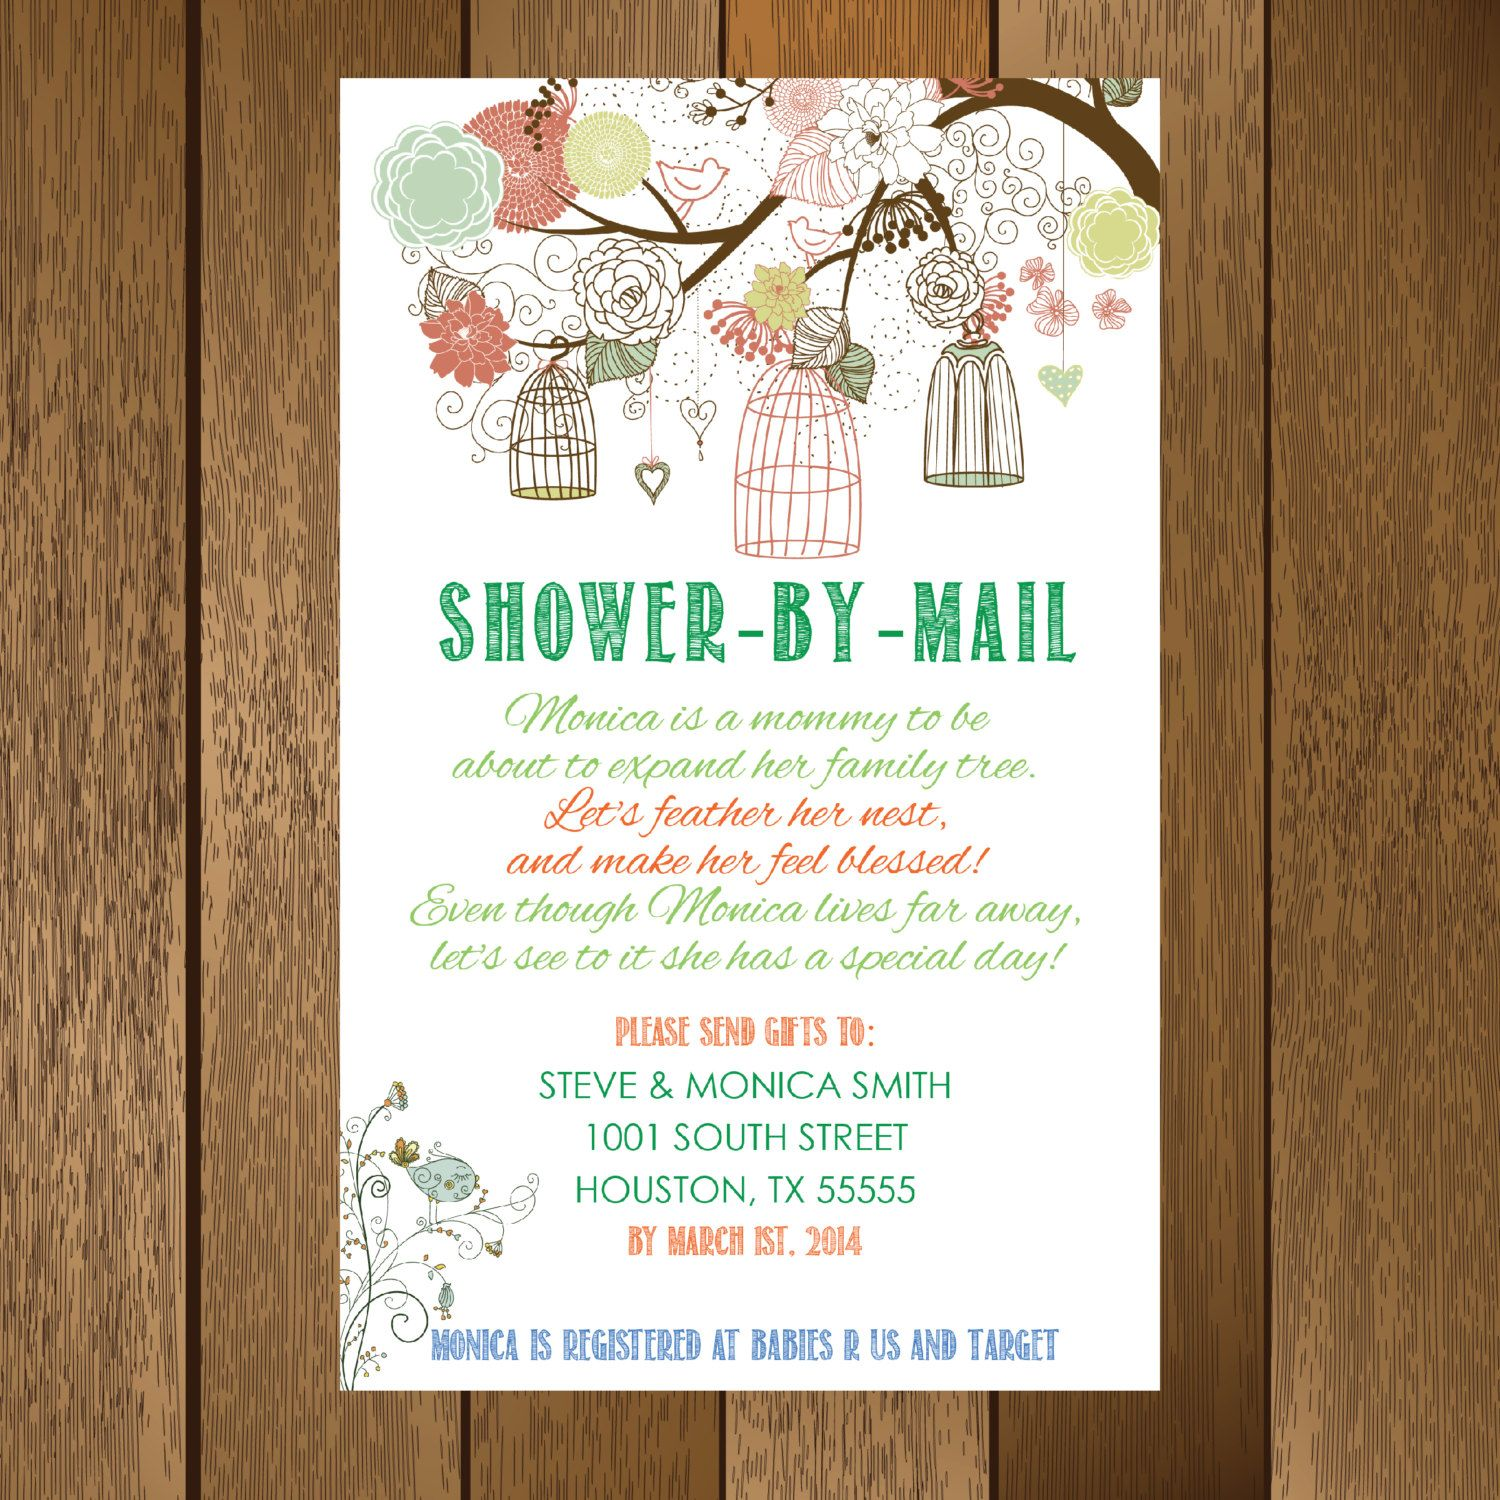 Rustic Shower by Mail Baby Shower Invitation, Printable | Rustic ...